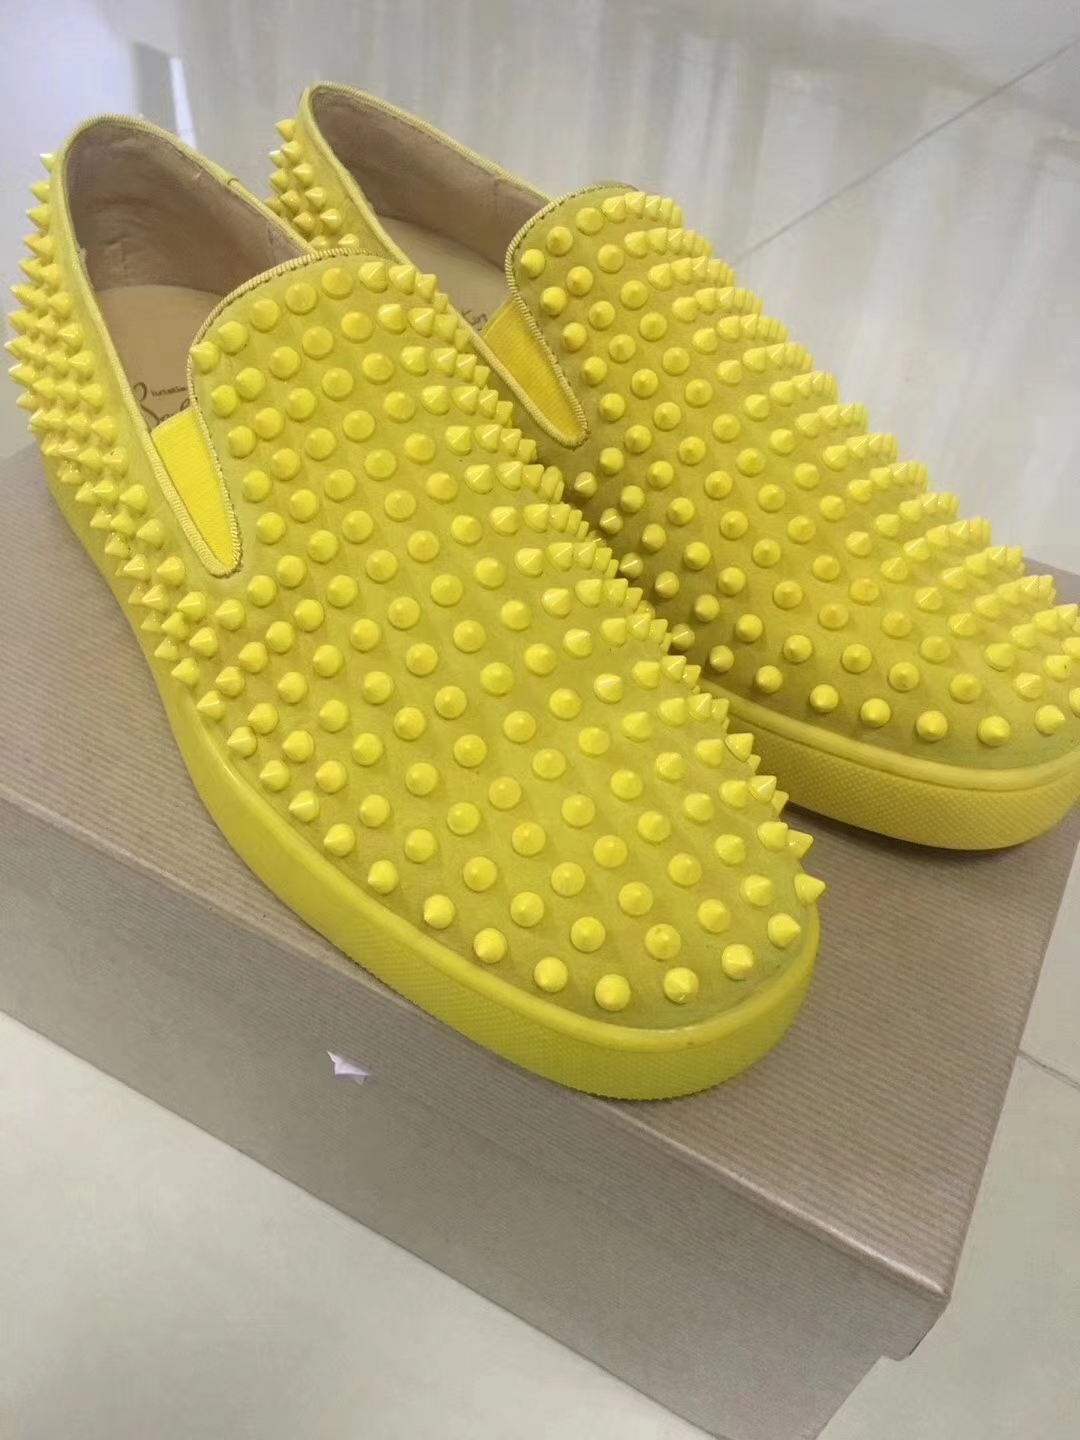 7701b95abb6 red bottom shoes for men - Louboutin For Man Sneakers Christian Louboutin  Flat Yellow Suede Spike Boat Shoes - red bottoms for men - red bottom  sneakers US  ...